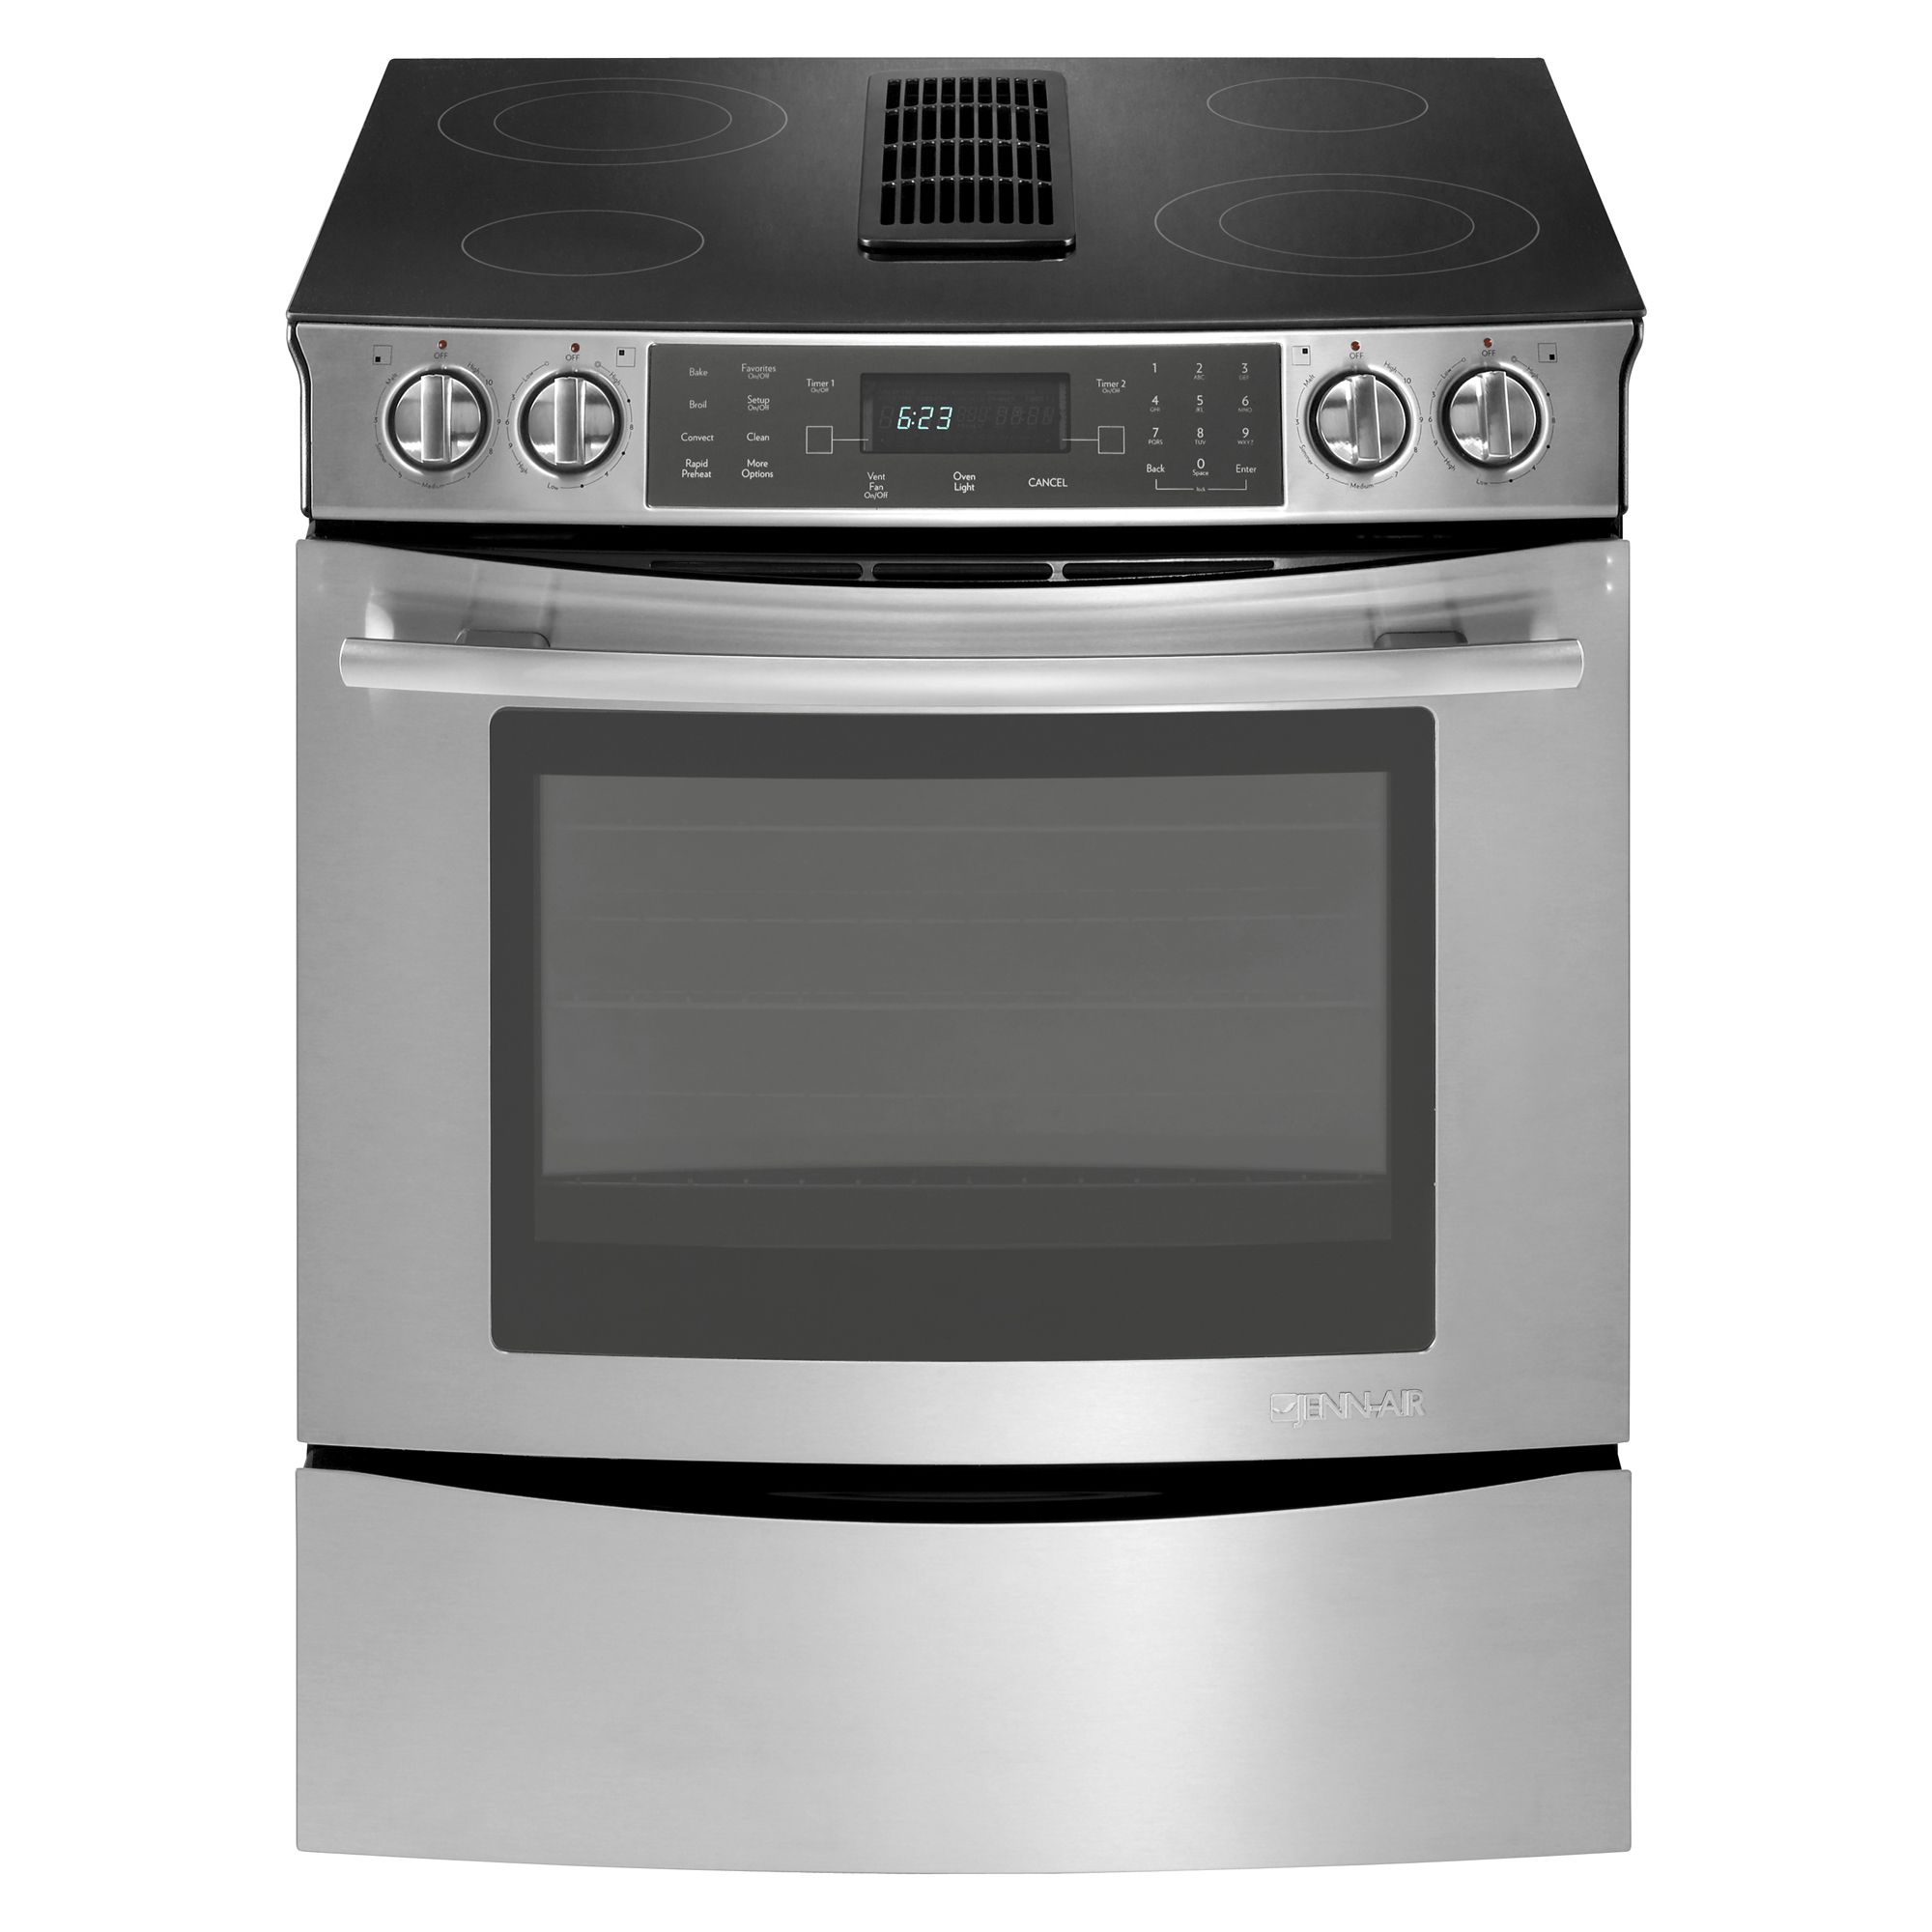 "Jenn-air Jes9800cas 30"" Slide-in Electric Downdraft Range"